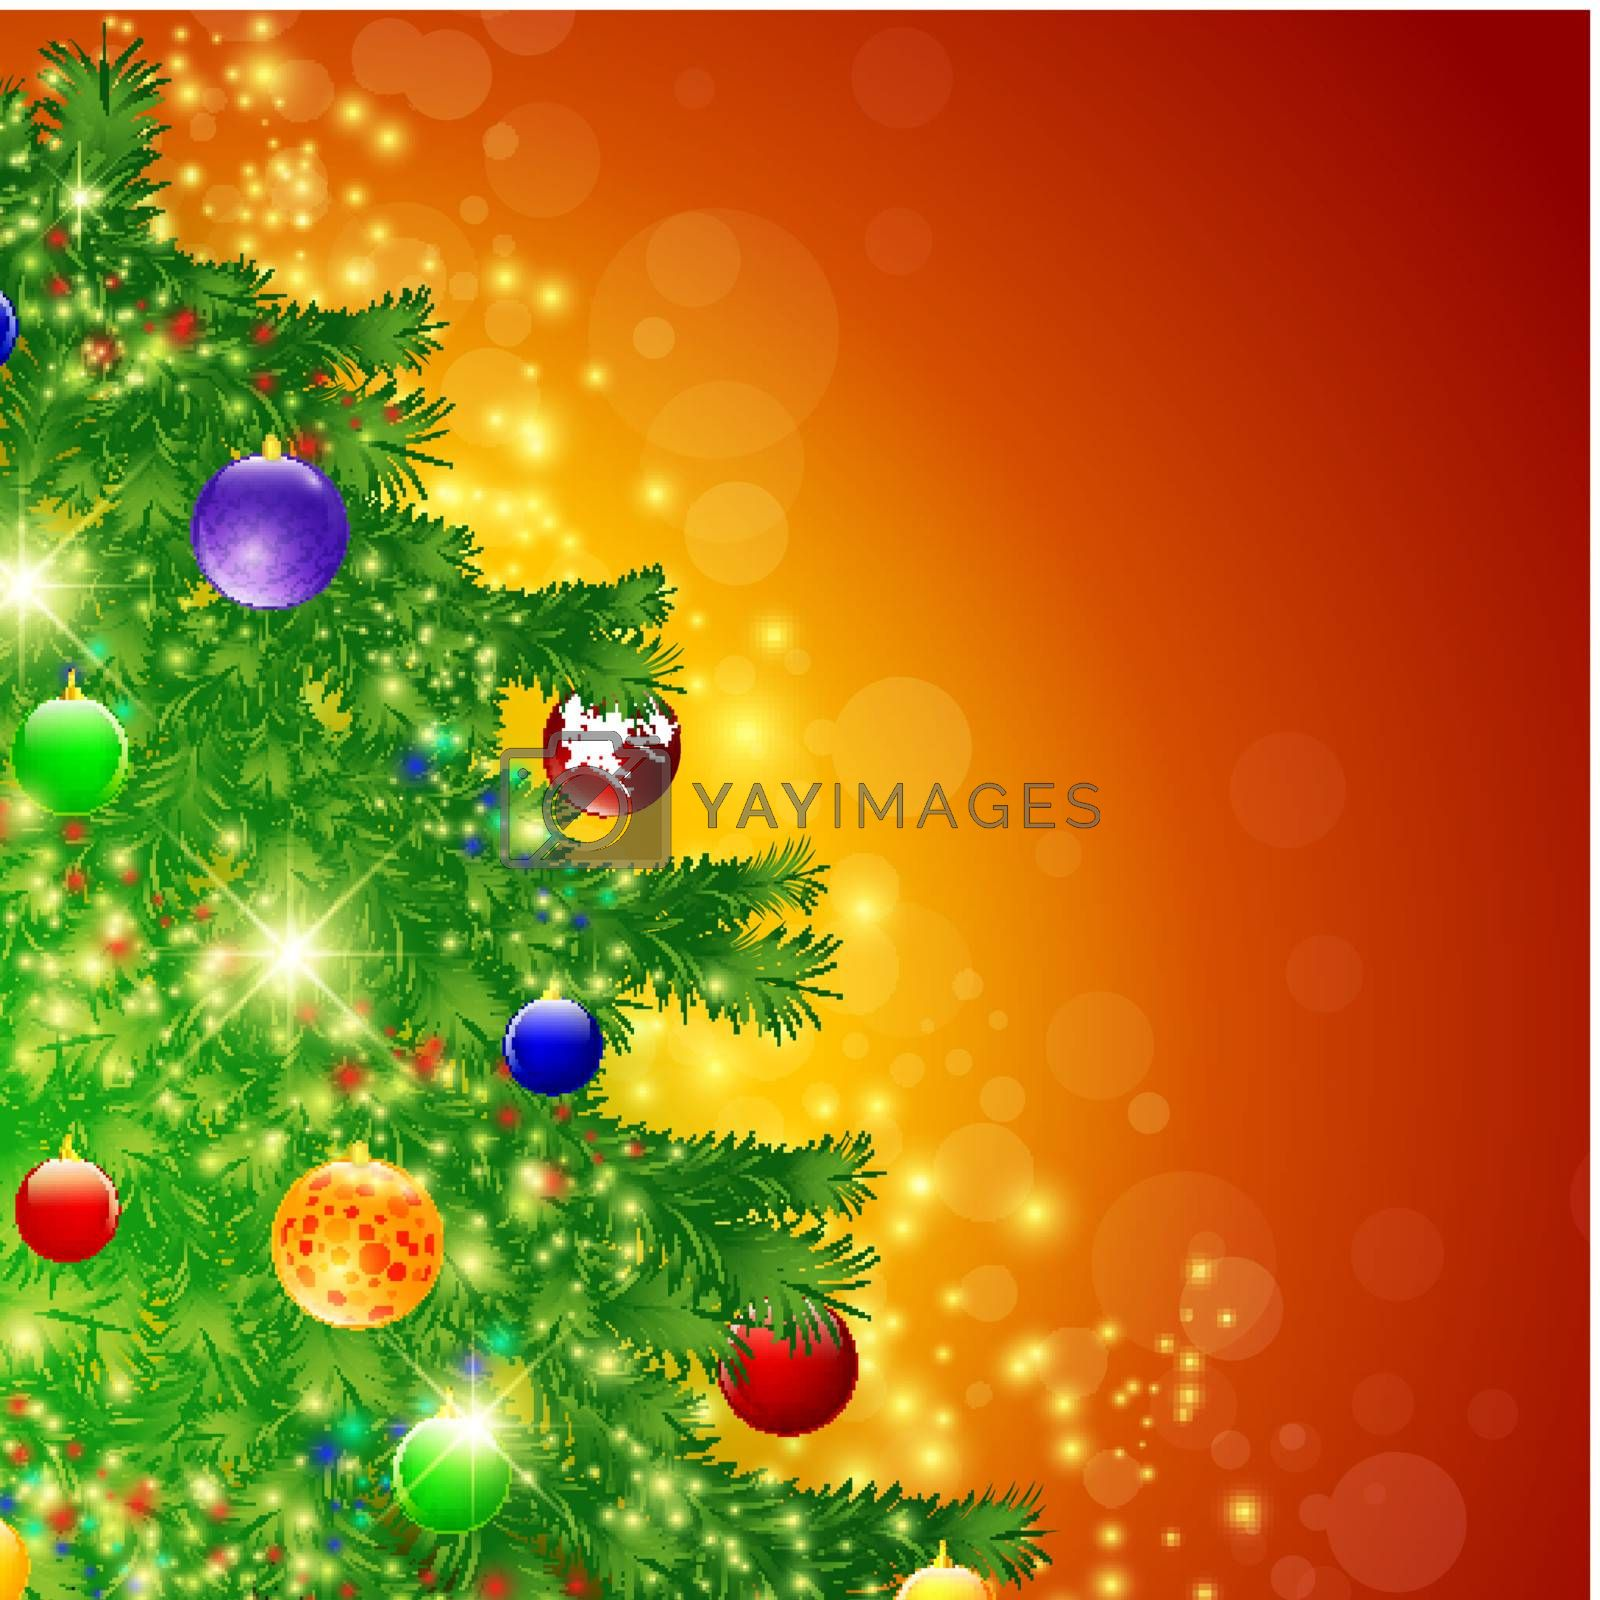 Illustration of decorated Christmas tree over bright background